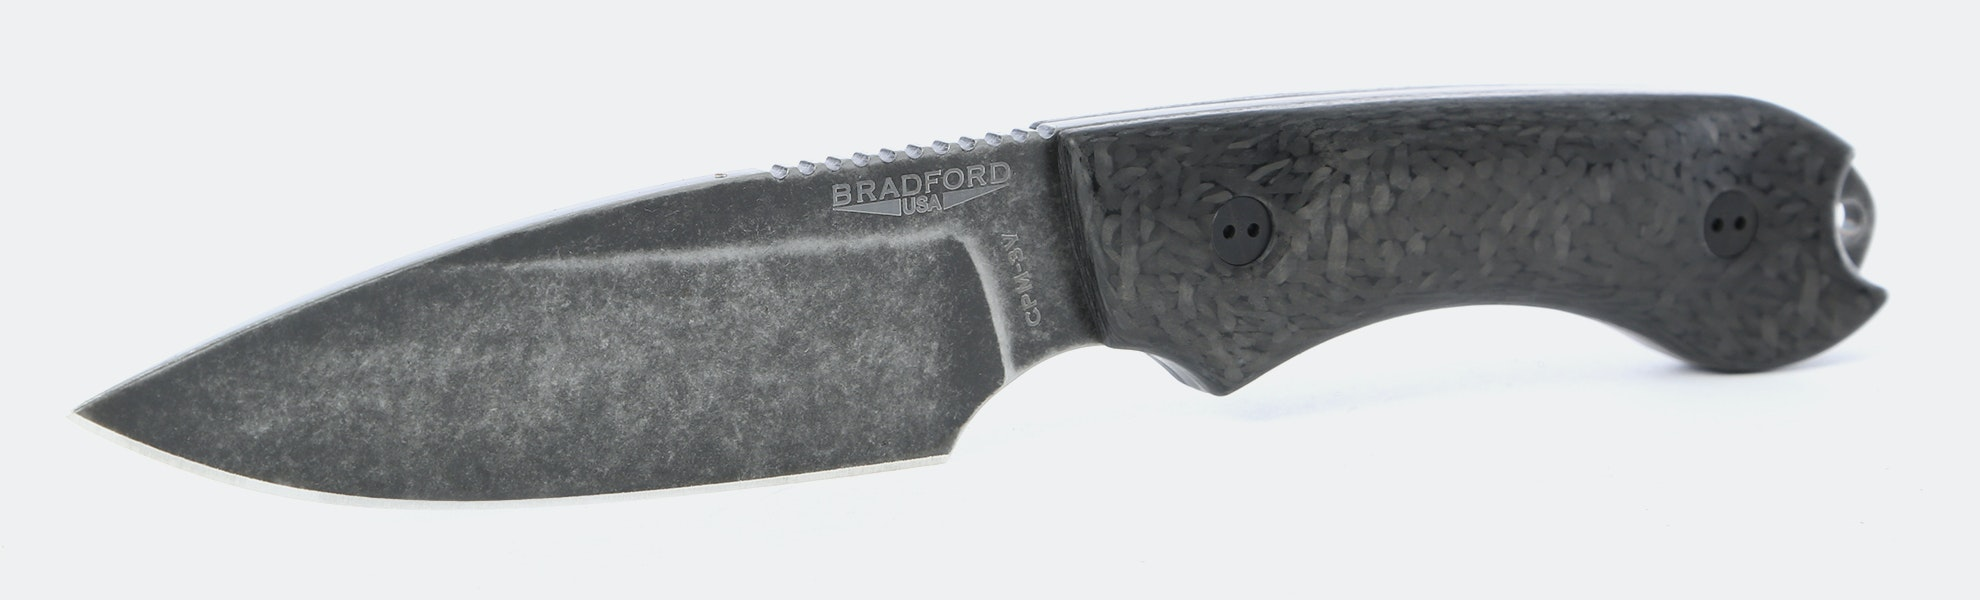 Bradford Knives Guardian 4 Fixed Blade Knife